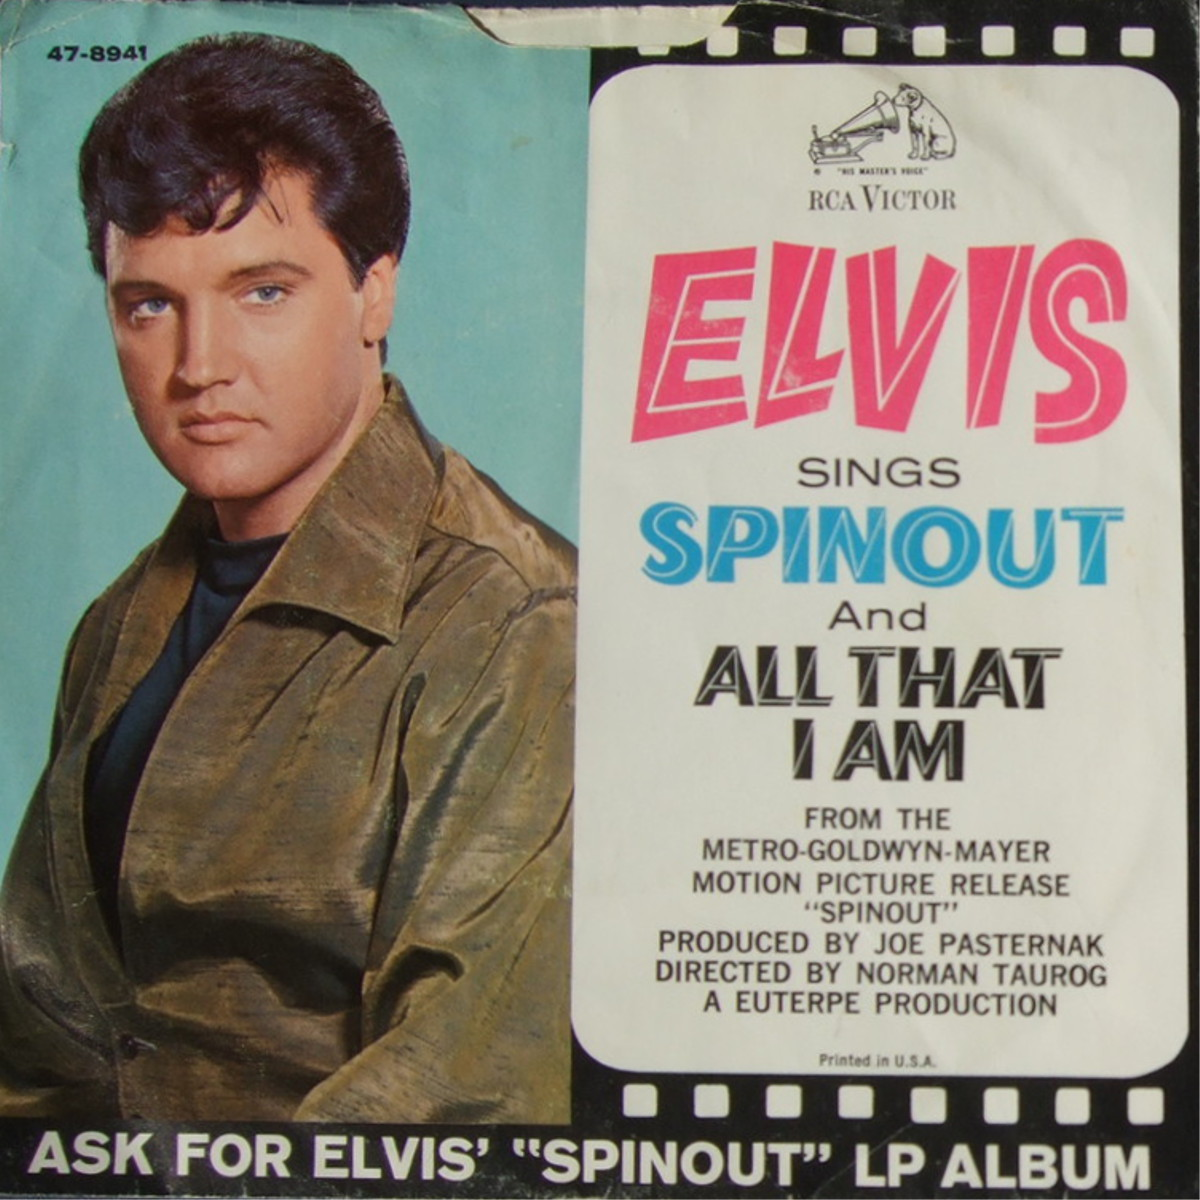 Spinout / All That I Am 47-8941a4qqw1